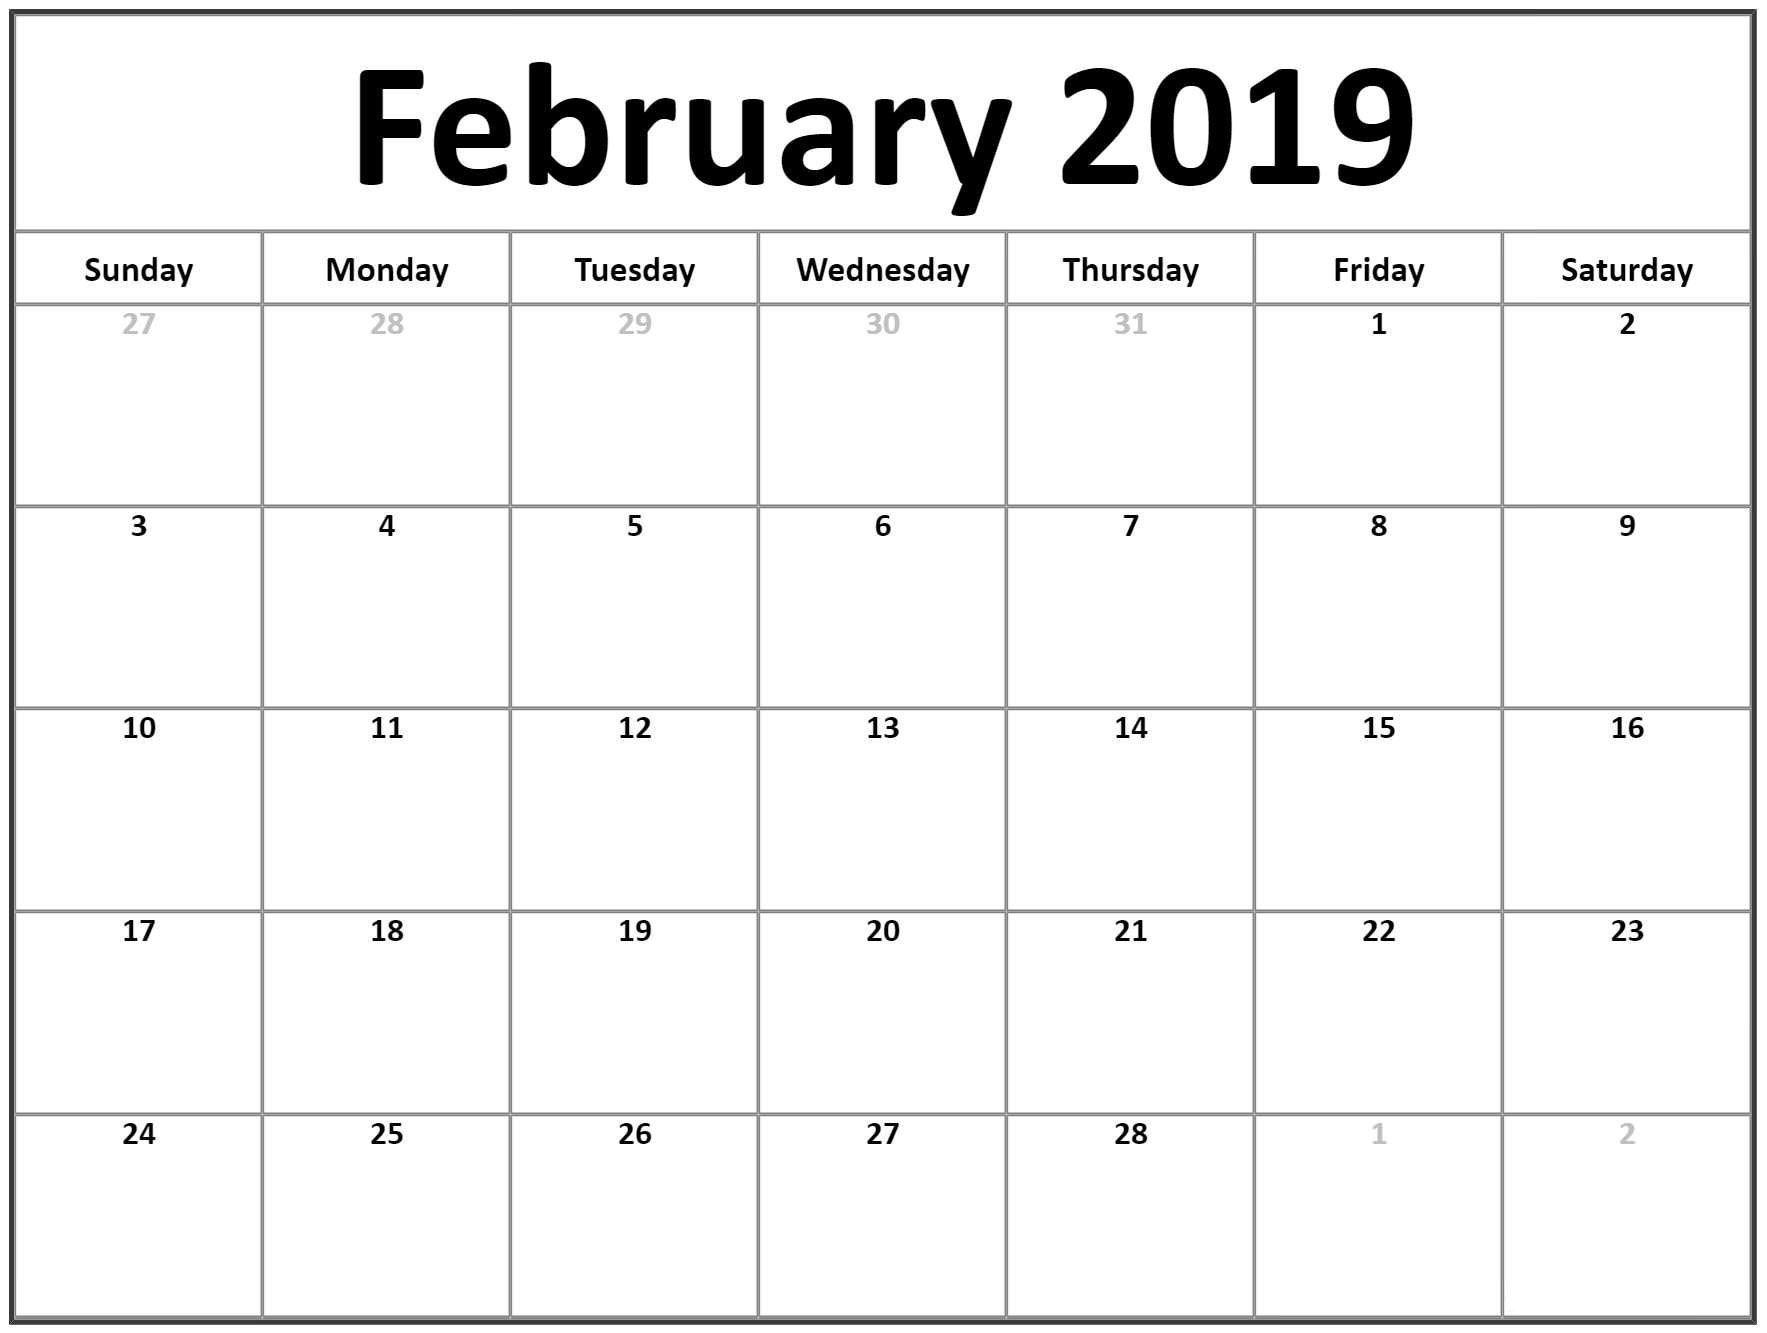 Free February 2019 Printable Calendar Templates - Calendar Hour Download A Calendar 2019